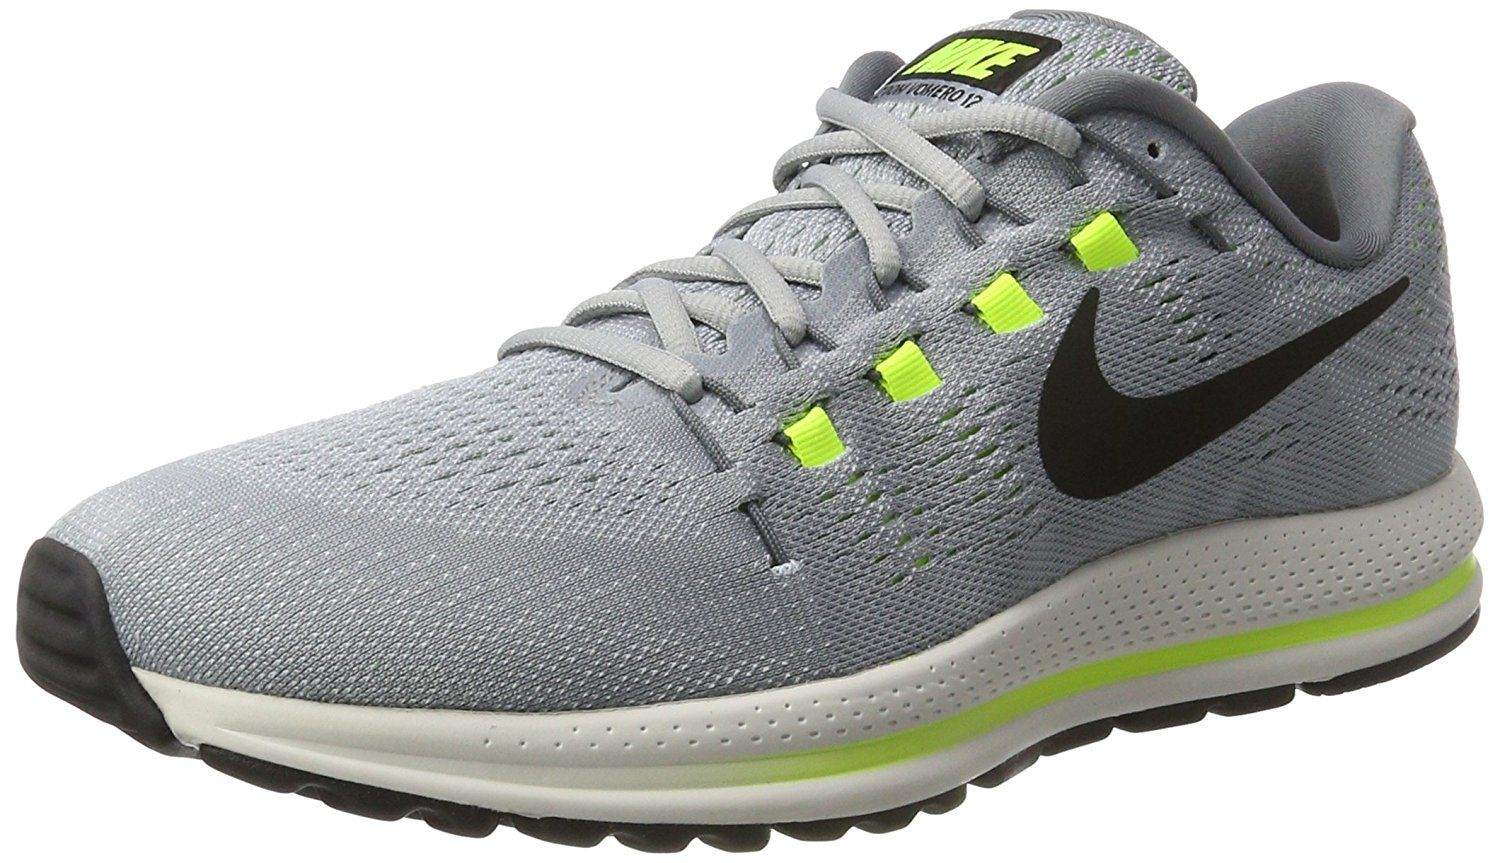 The Is First In Best Running Zoom Nike Our 10 Air Top List Shoe 92YWDIHE